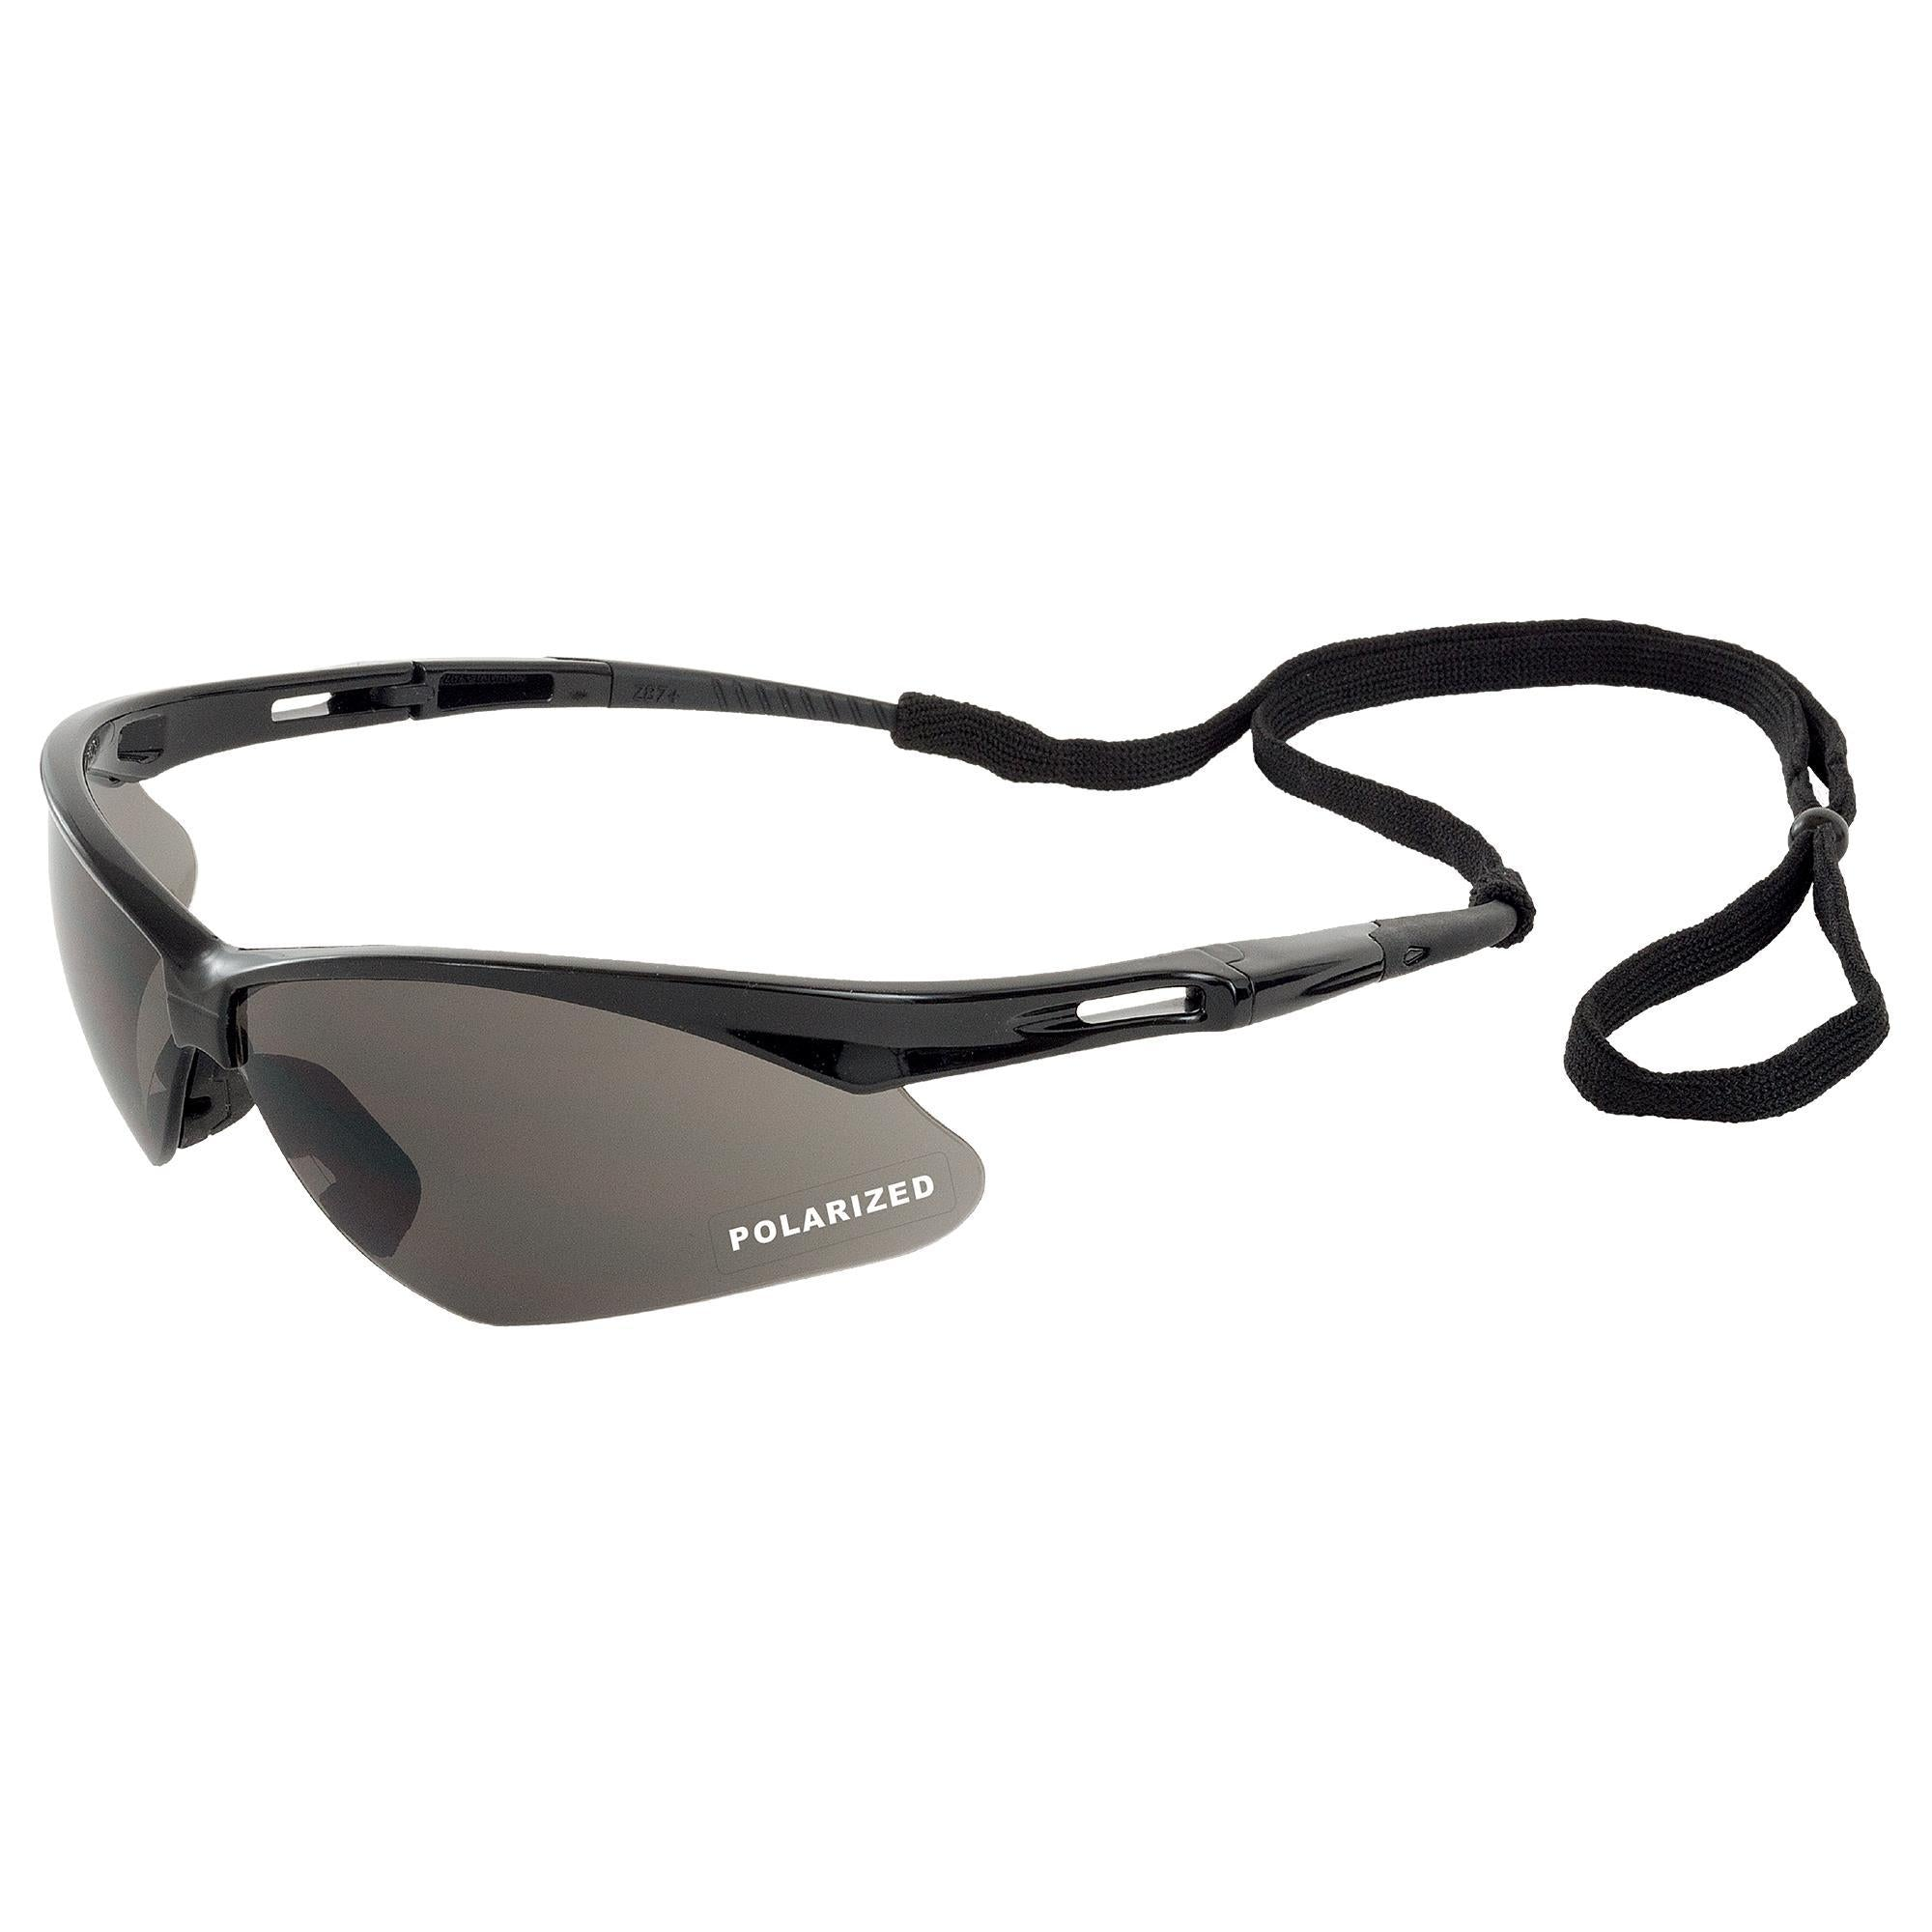 OCTANE® Safety Glasses Polarized 1PC